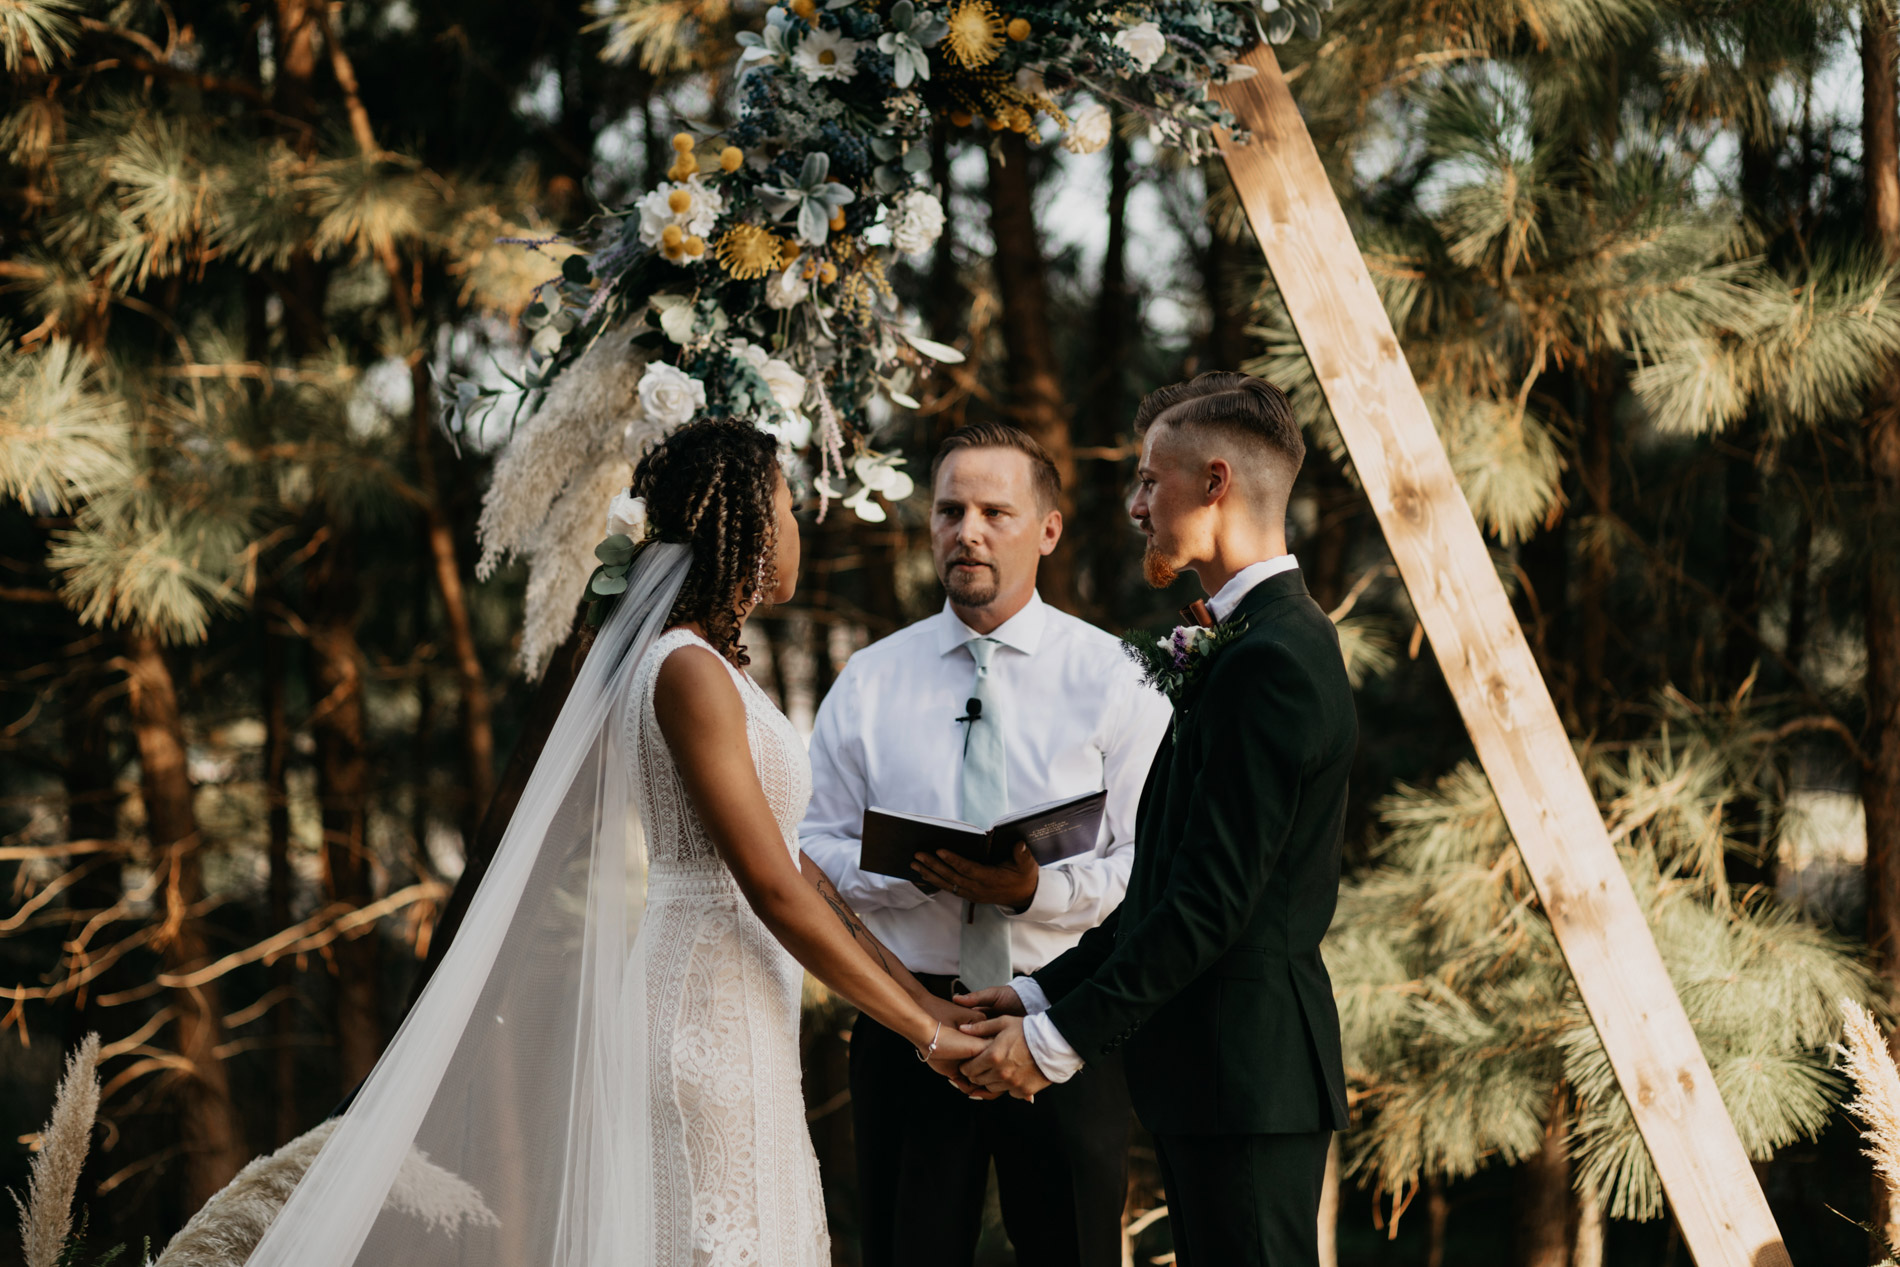 Bride and groom standing at the altar during bohemian wedding ceremony